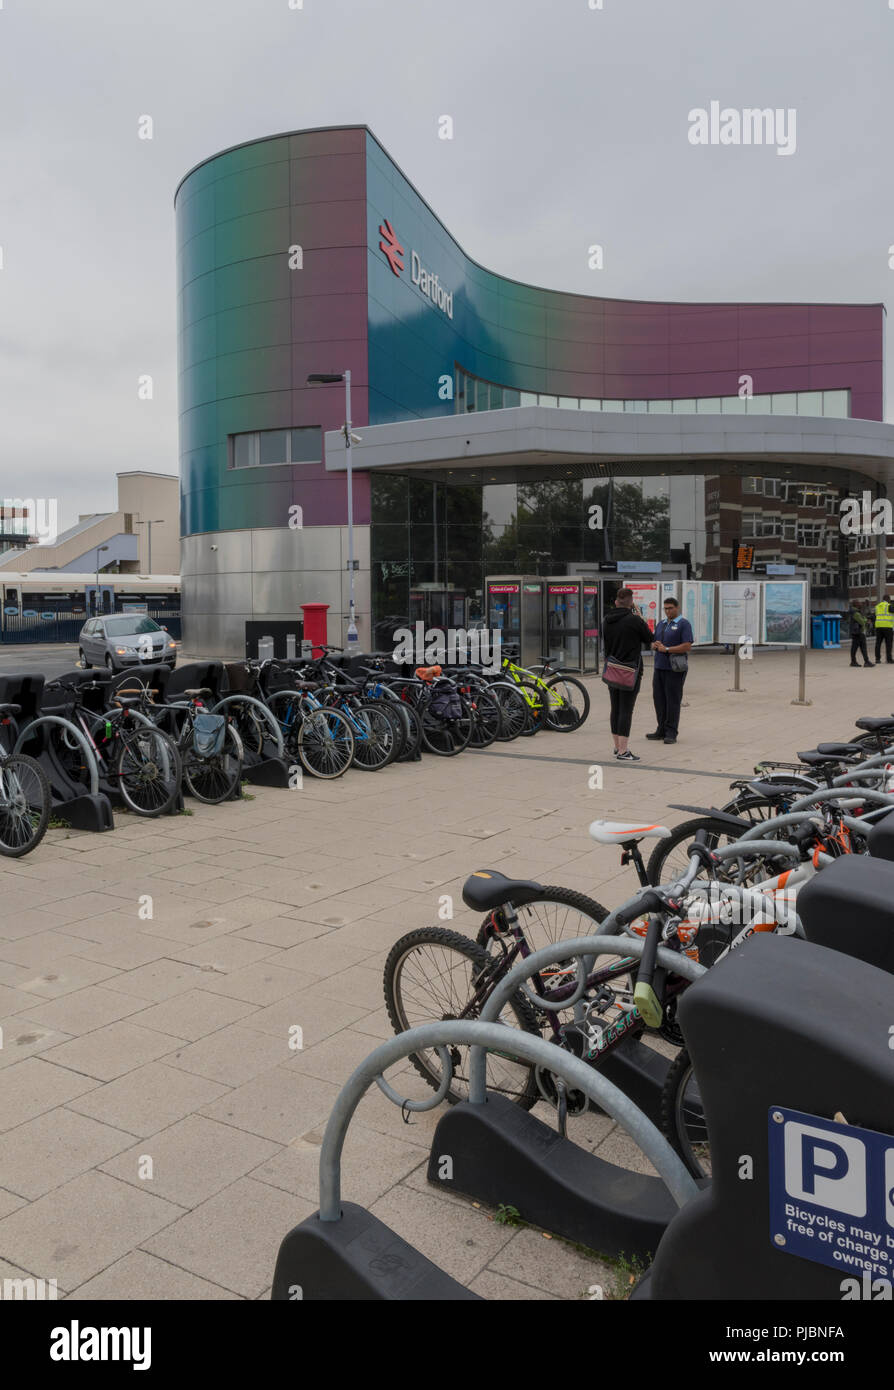 bicycle racks for commuters outside of Dartford railway station in Kent. - Stock Image